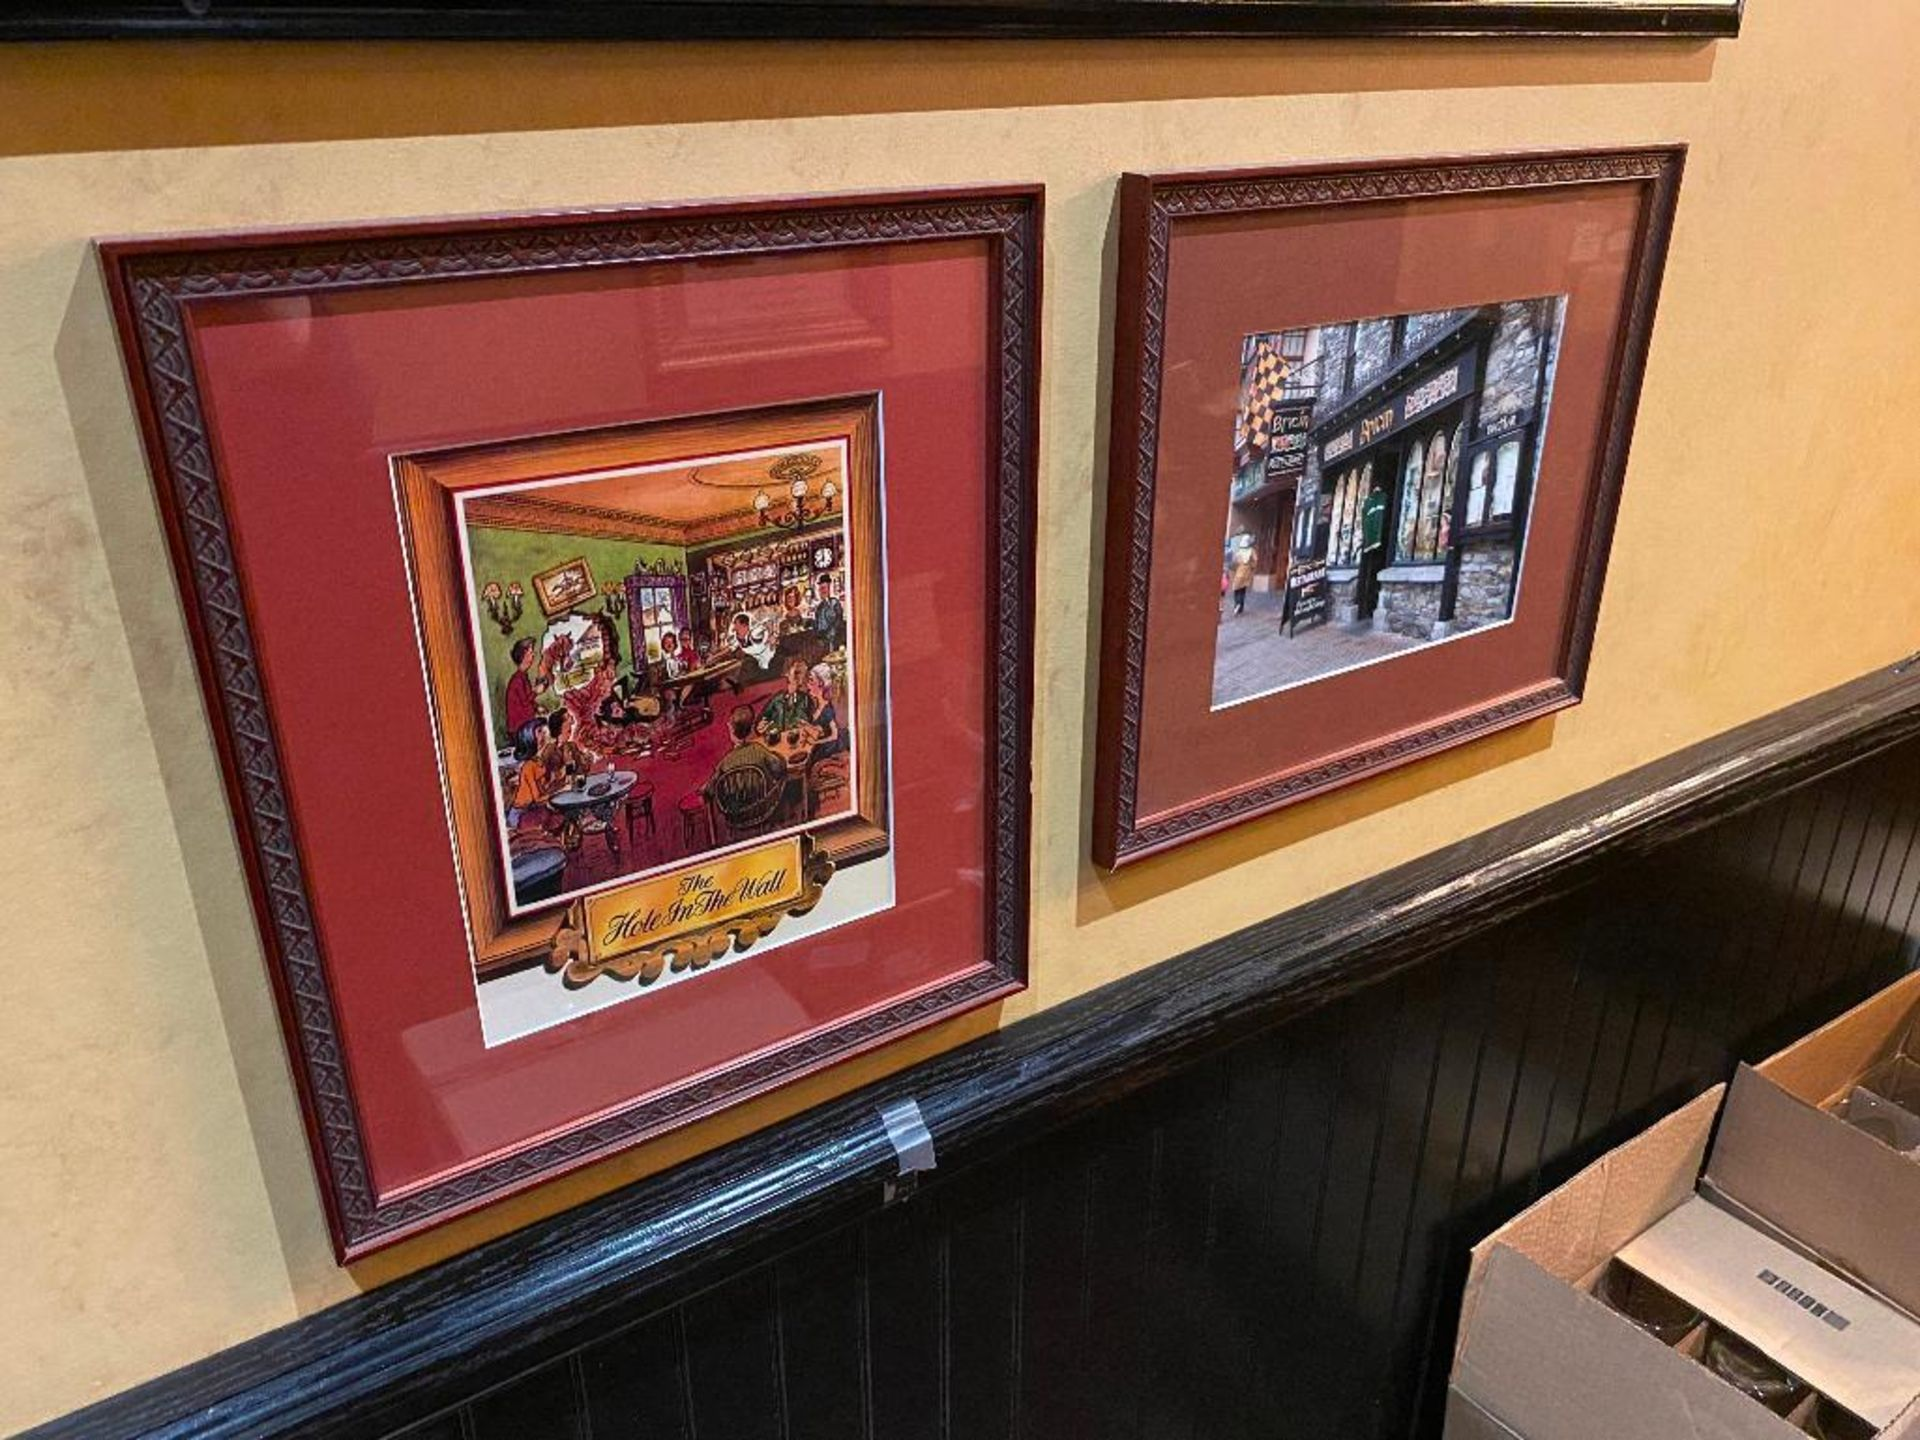 LOT OF (3) FRAMED MEMORABILIA PHOTOS & (1) GUINNESS MIRROR - NOTE: REQUIRES REMOVAL FROM WALL, PLEAS - Image 2 of 5